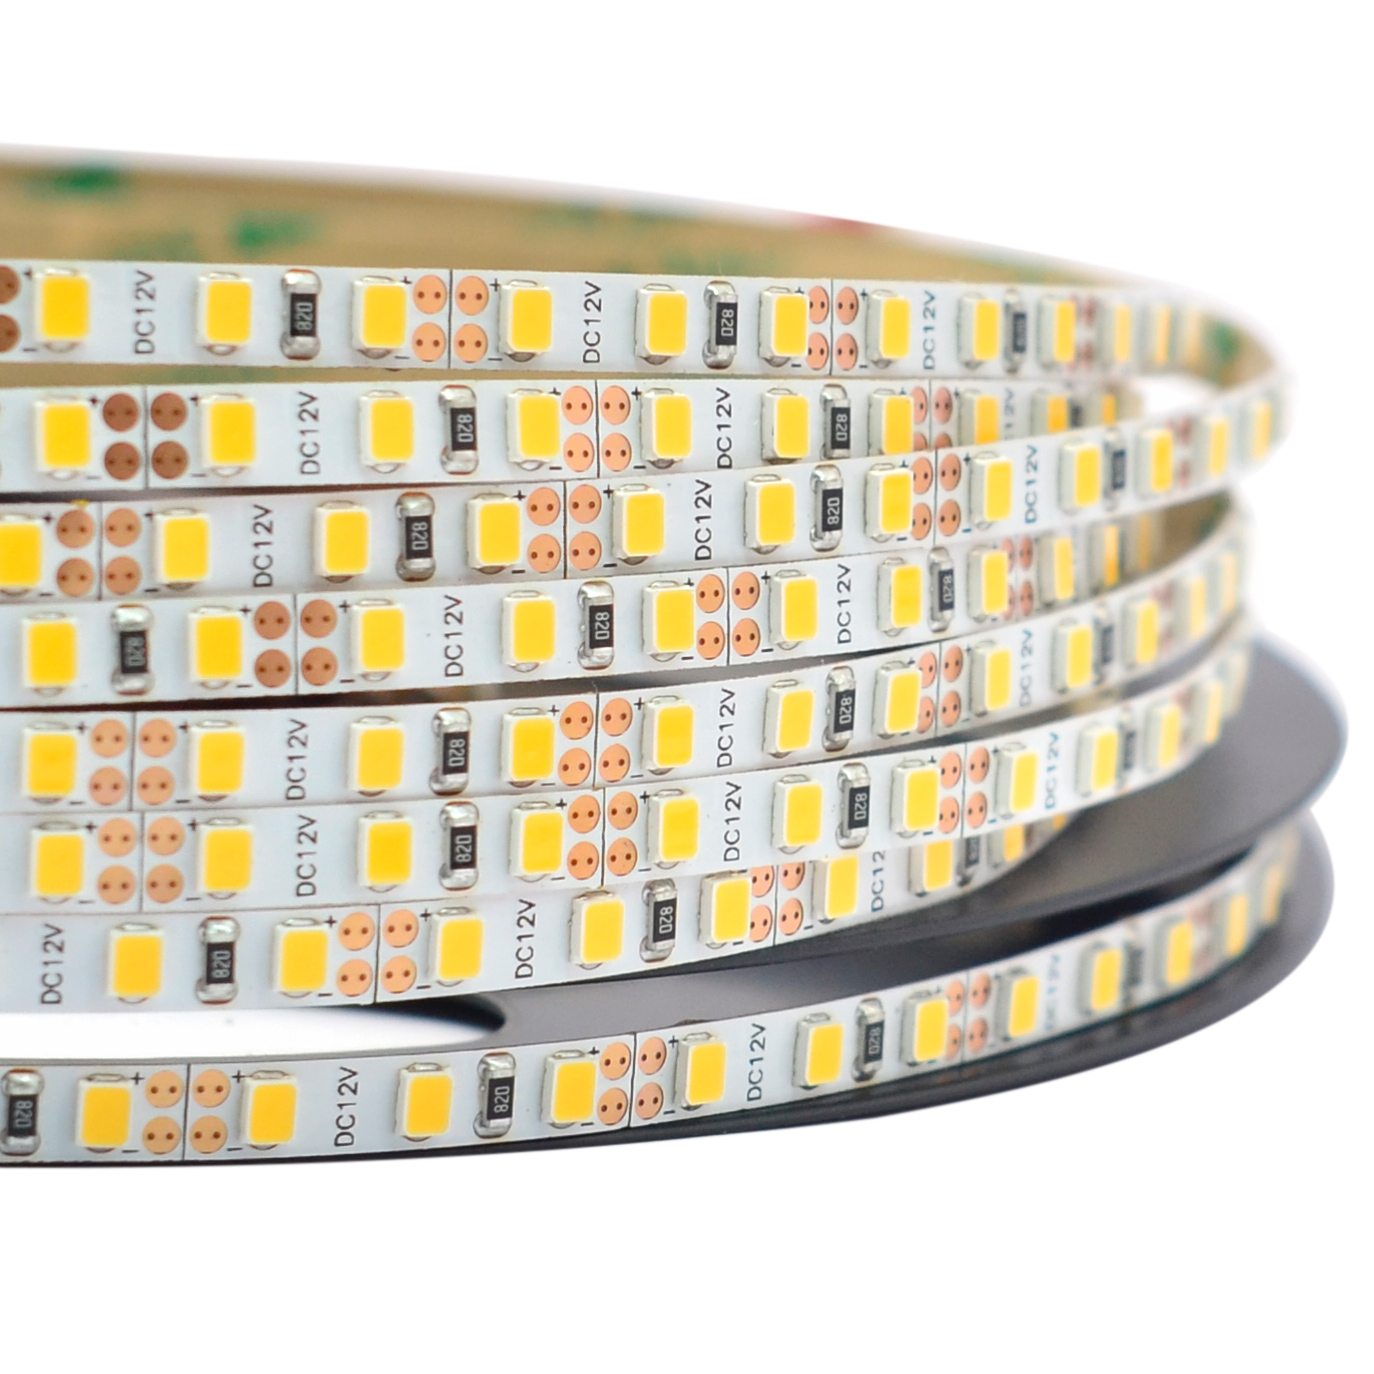 Single Row Narrow DC24V Series 2835SMD 480LEDs Flexible LED Strip Lights Indoor Lighting Width 5mm 16.4ft Per Reel By Sale